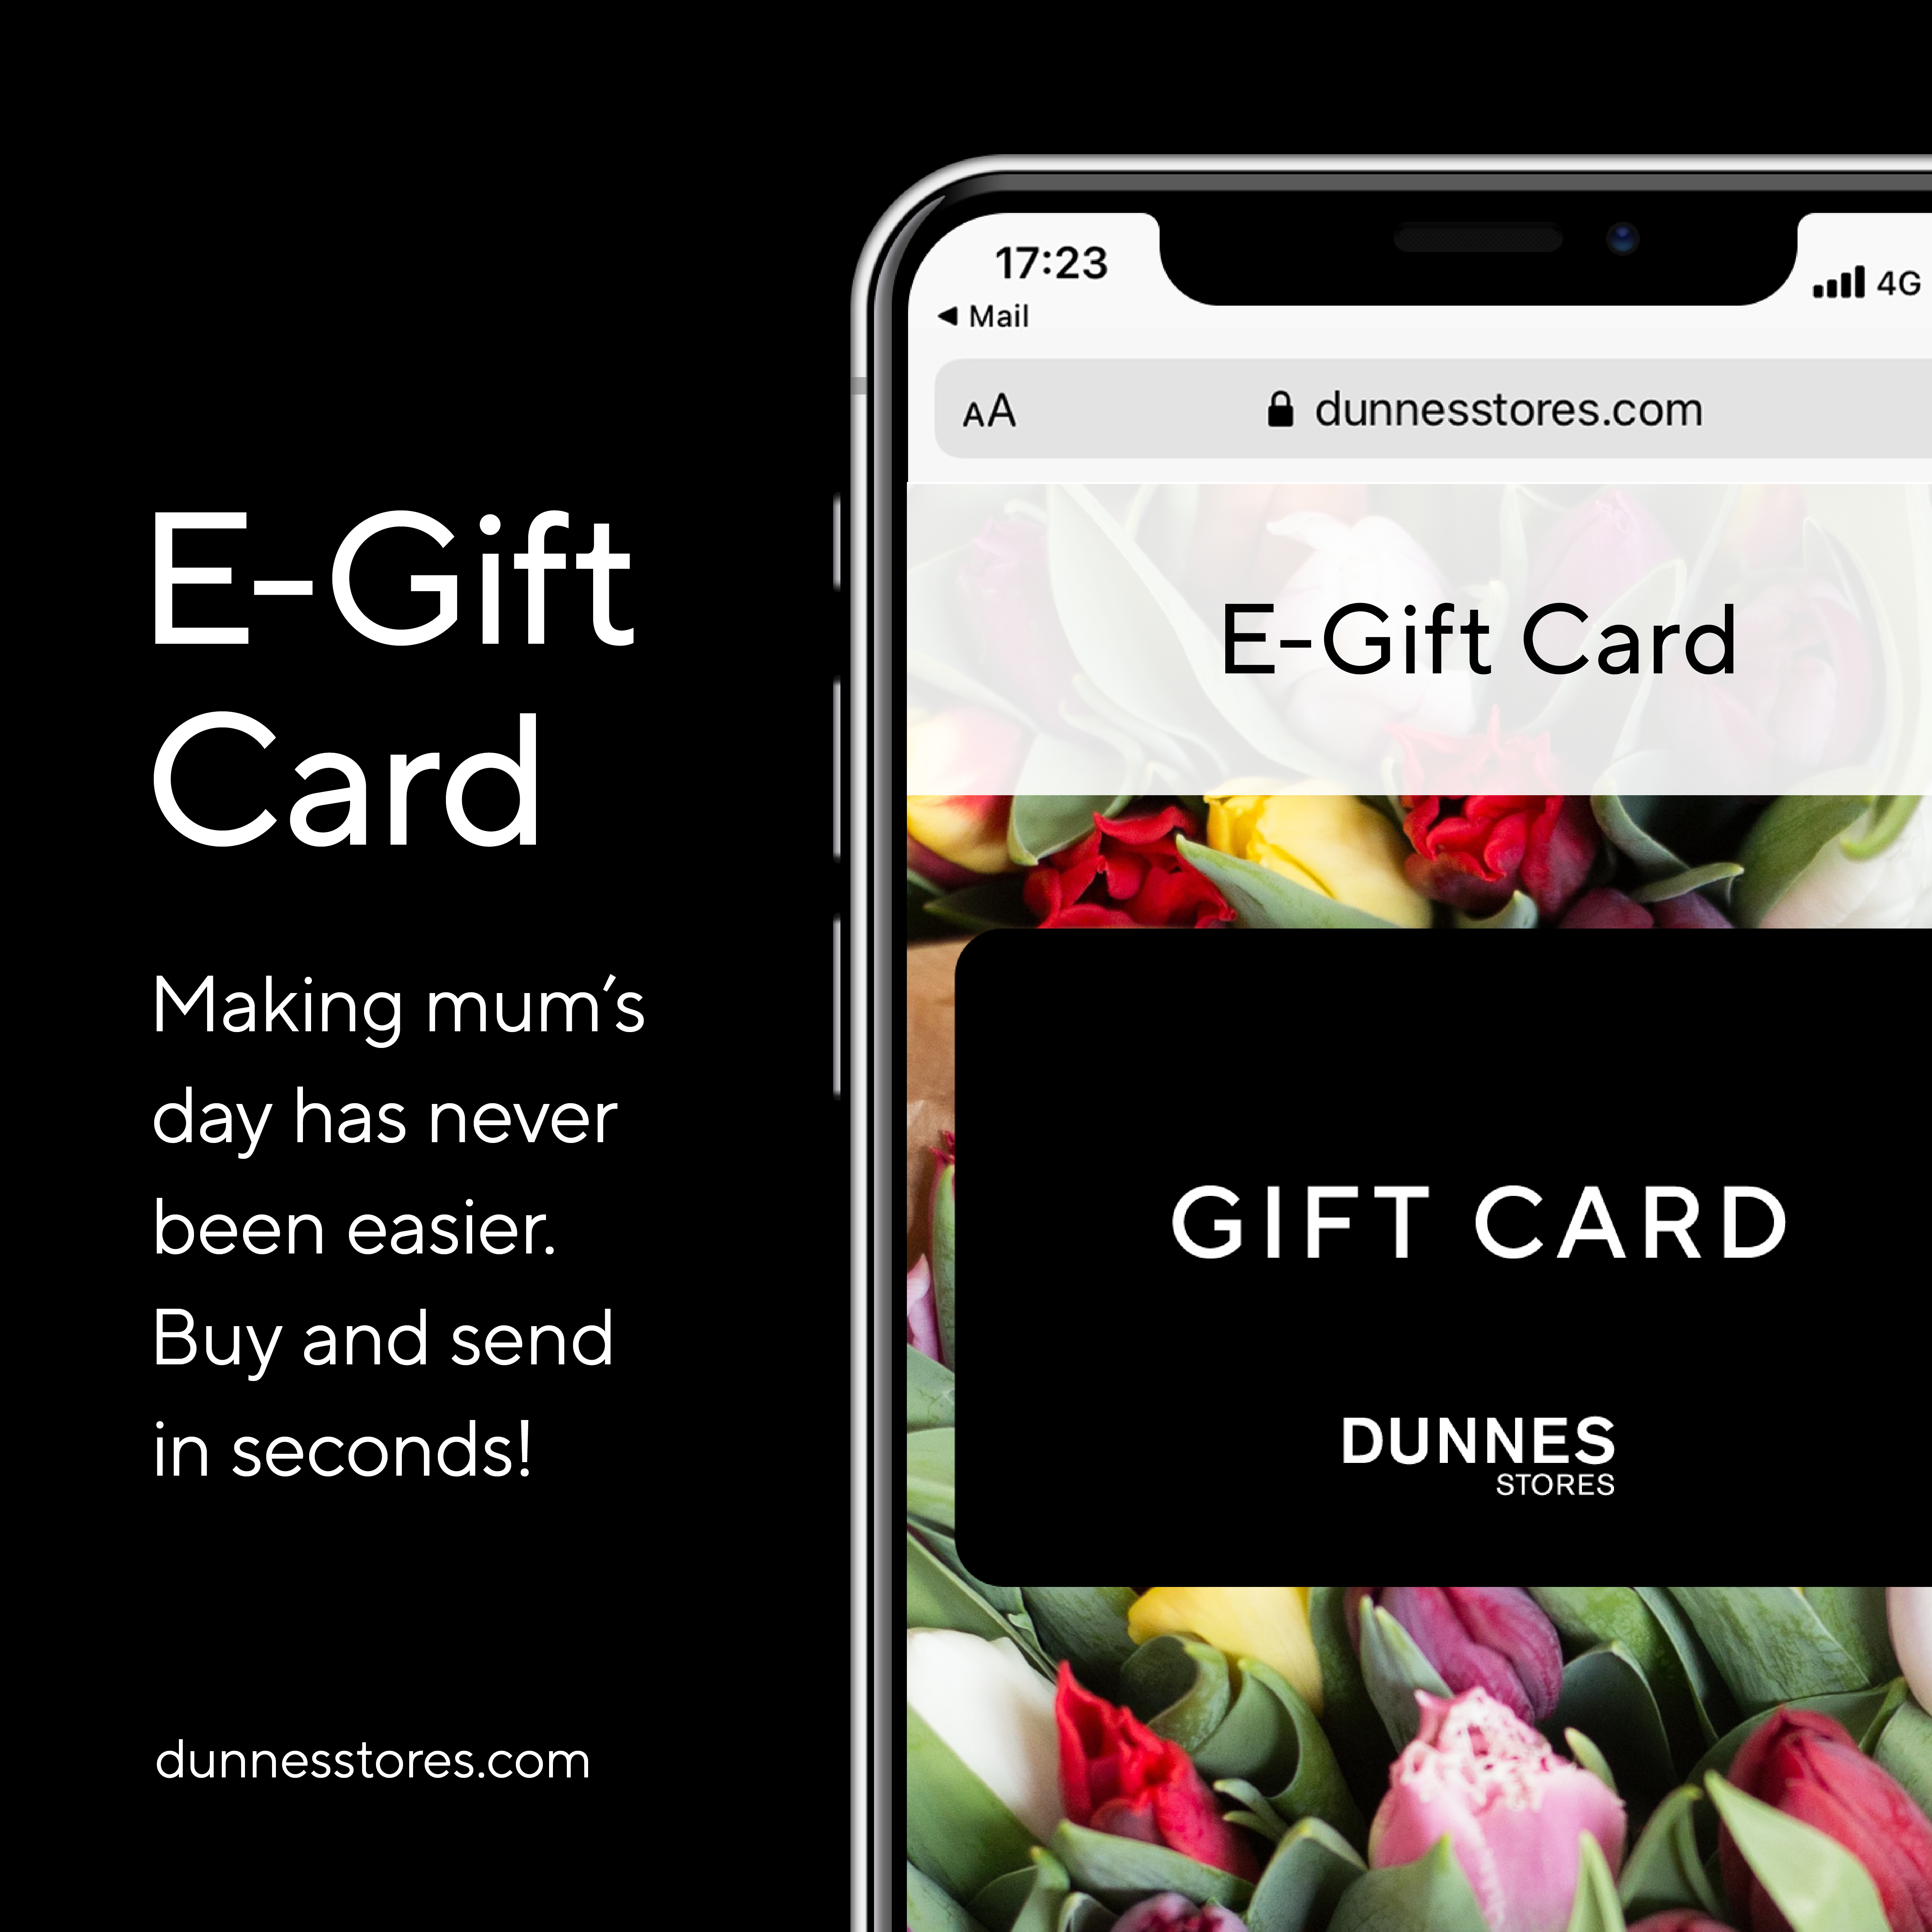 Making mum's day has never been easier. Show you care from anywhere with a Dunnes Stores E-Gift Card. Send & receive in seconds. Shop online now.